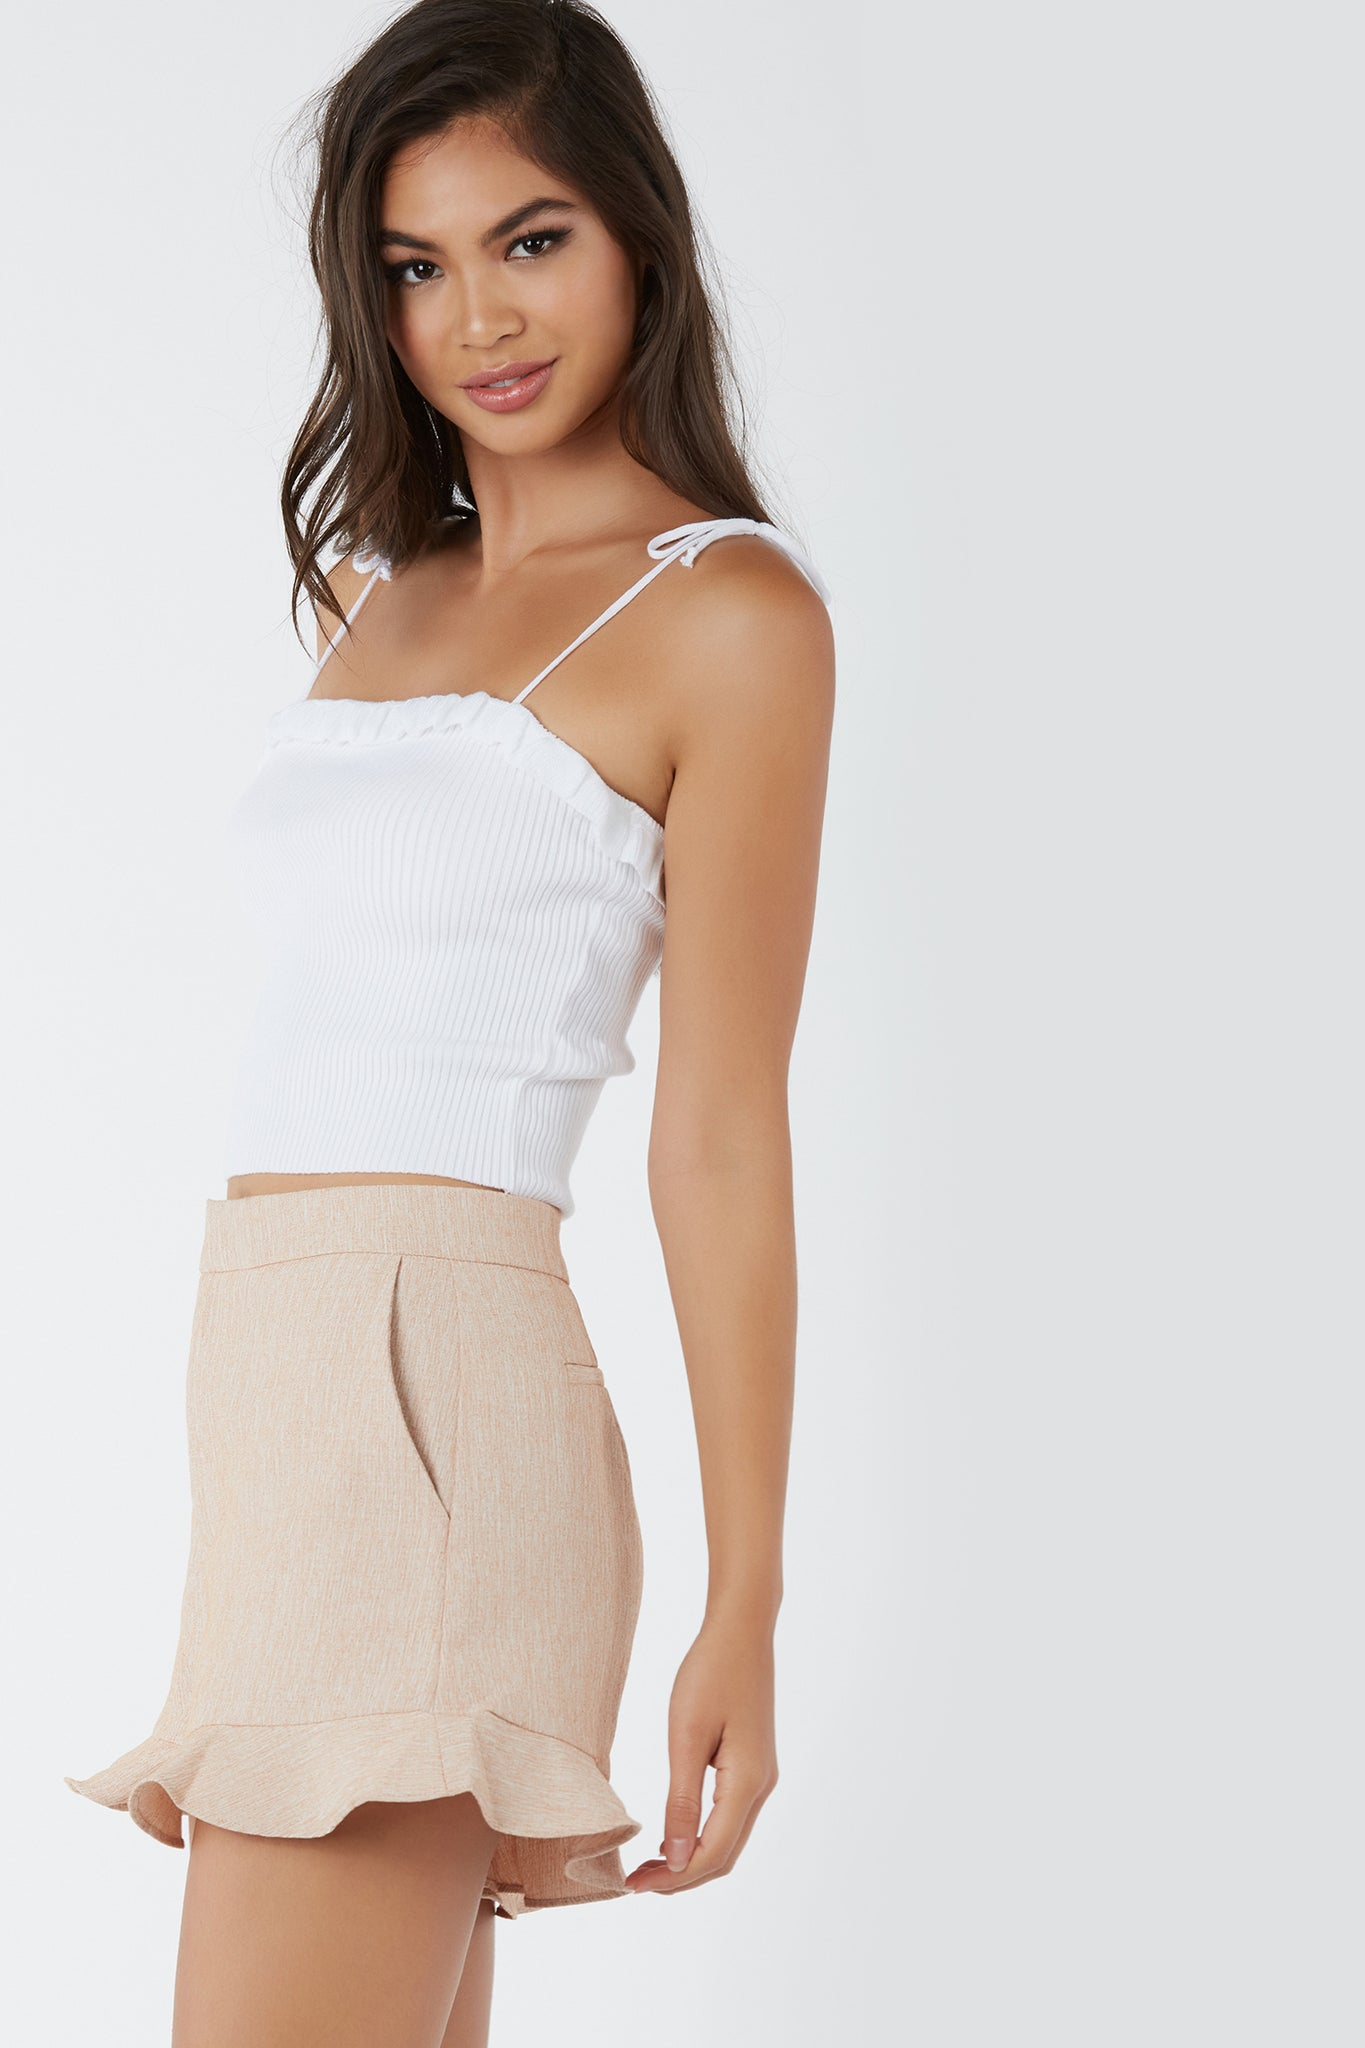 Flirty ribbed crop top with adorable ruffle trim detailing. Comfortable fit with amazing stretch and trendy tie up shoulder straps.